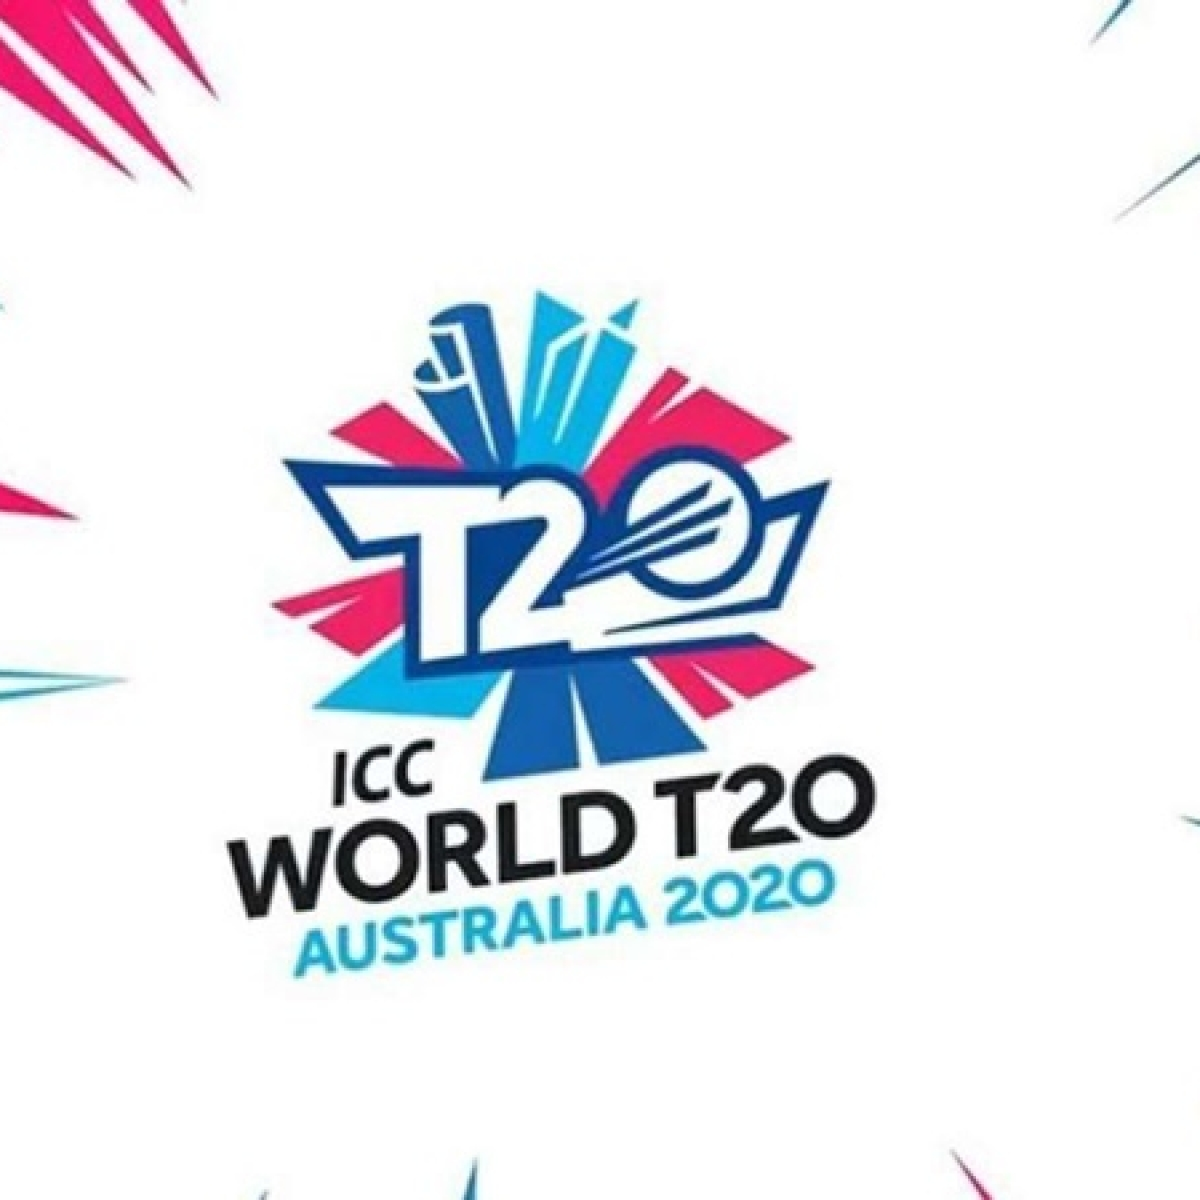 ICC likely to postpone T20 World Cup till 2022